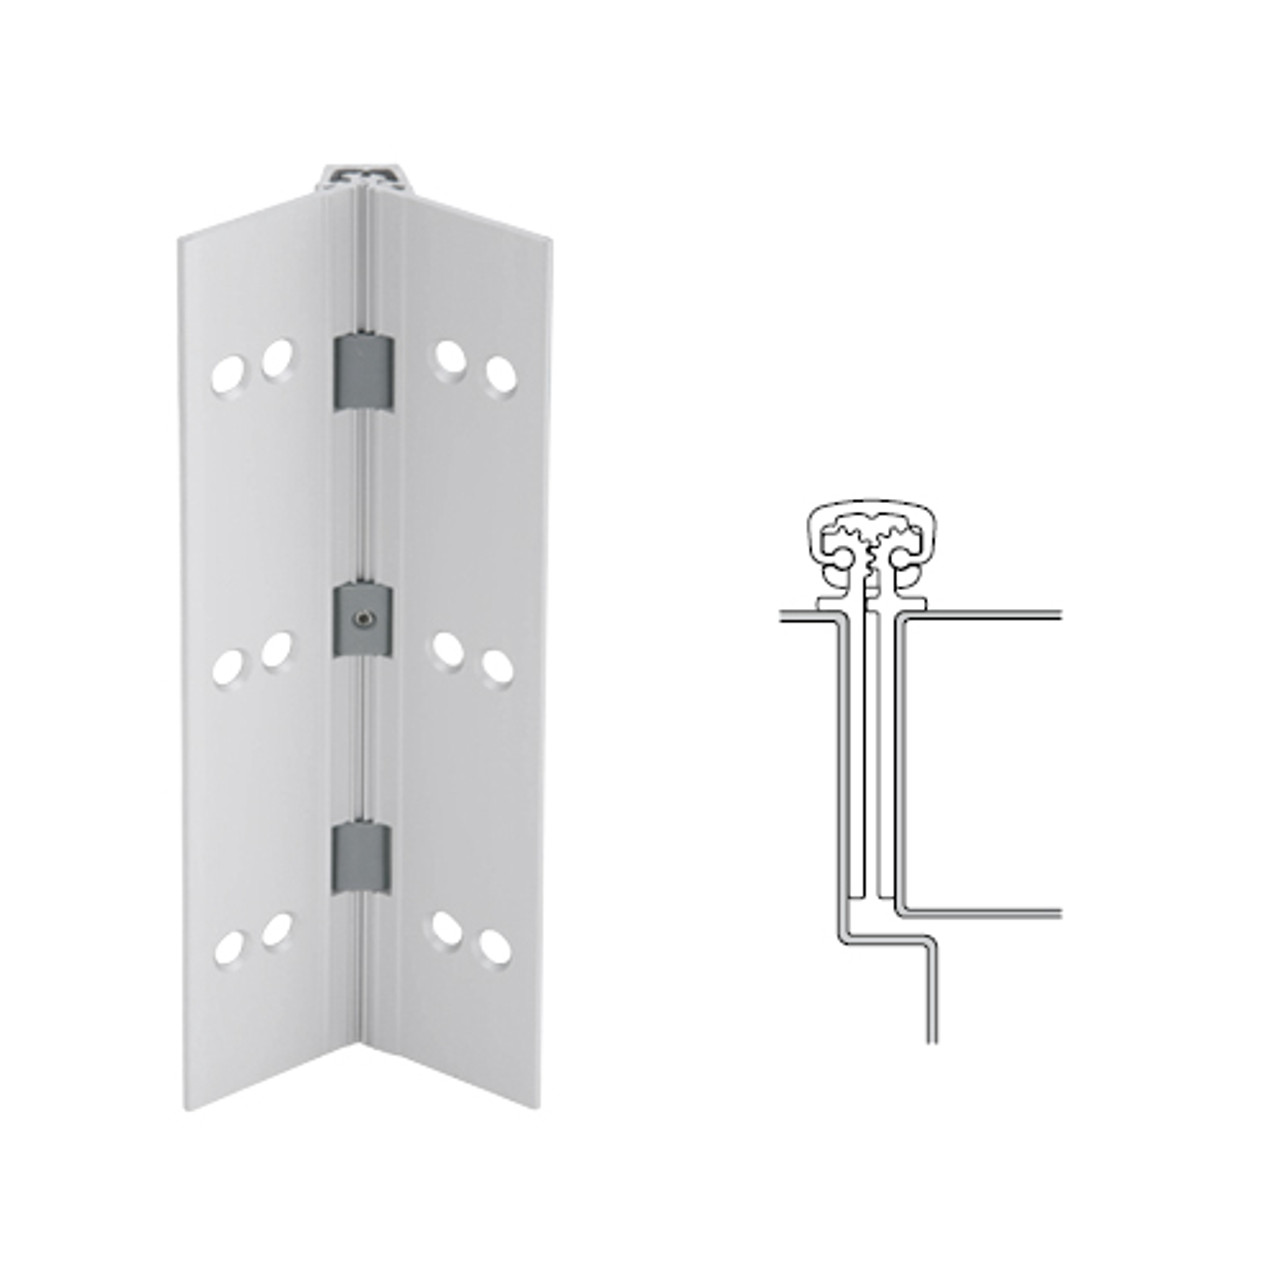 027XY-US28-120 IVES Full Mortise Continuous Geared Hinges in Satin Aluminum